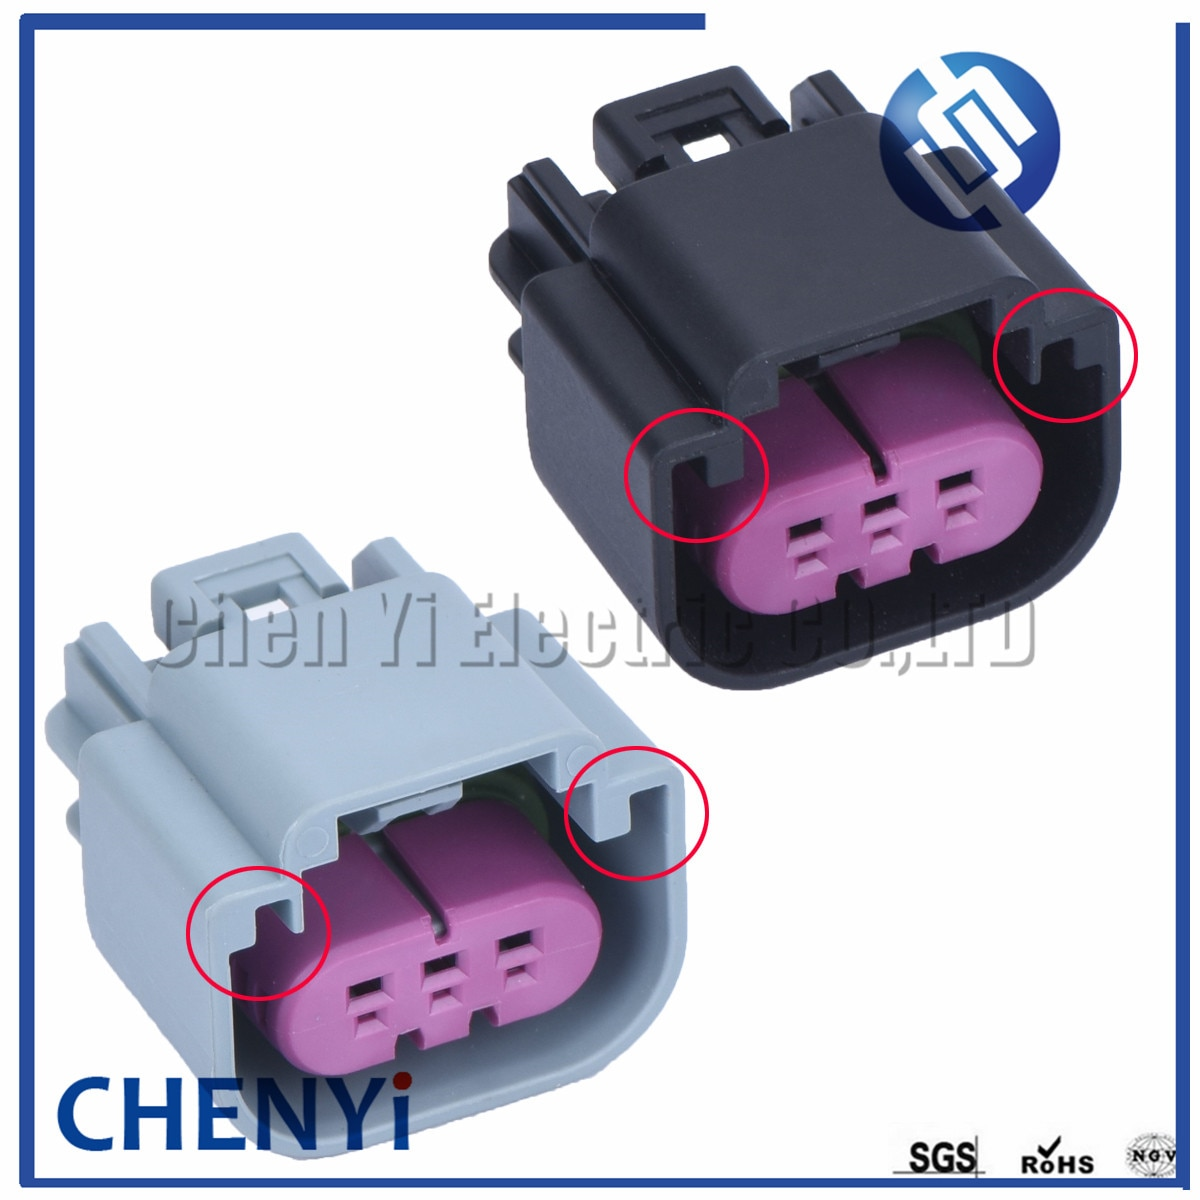 3 pin 1.5 series 13511132 Car waterproof Flex Fuel Sensor Oil Level Sensor Plug GT 150 Wiring Cable Auto Connector For BUICK BMW